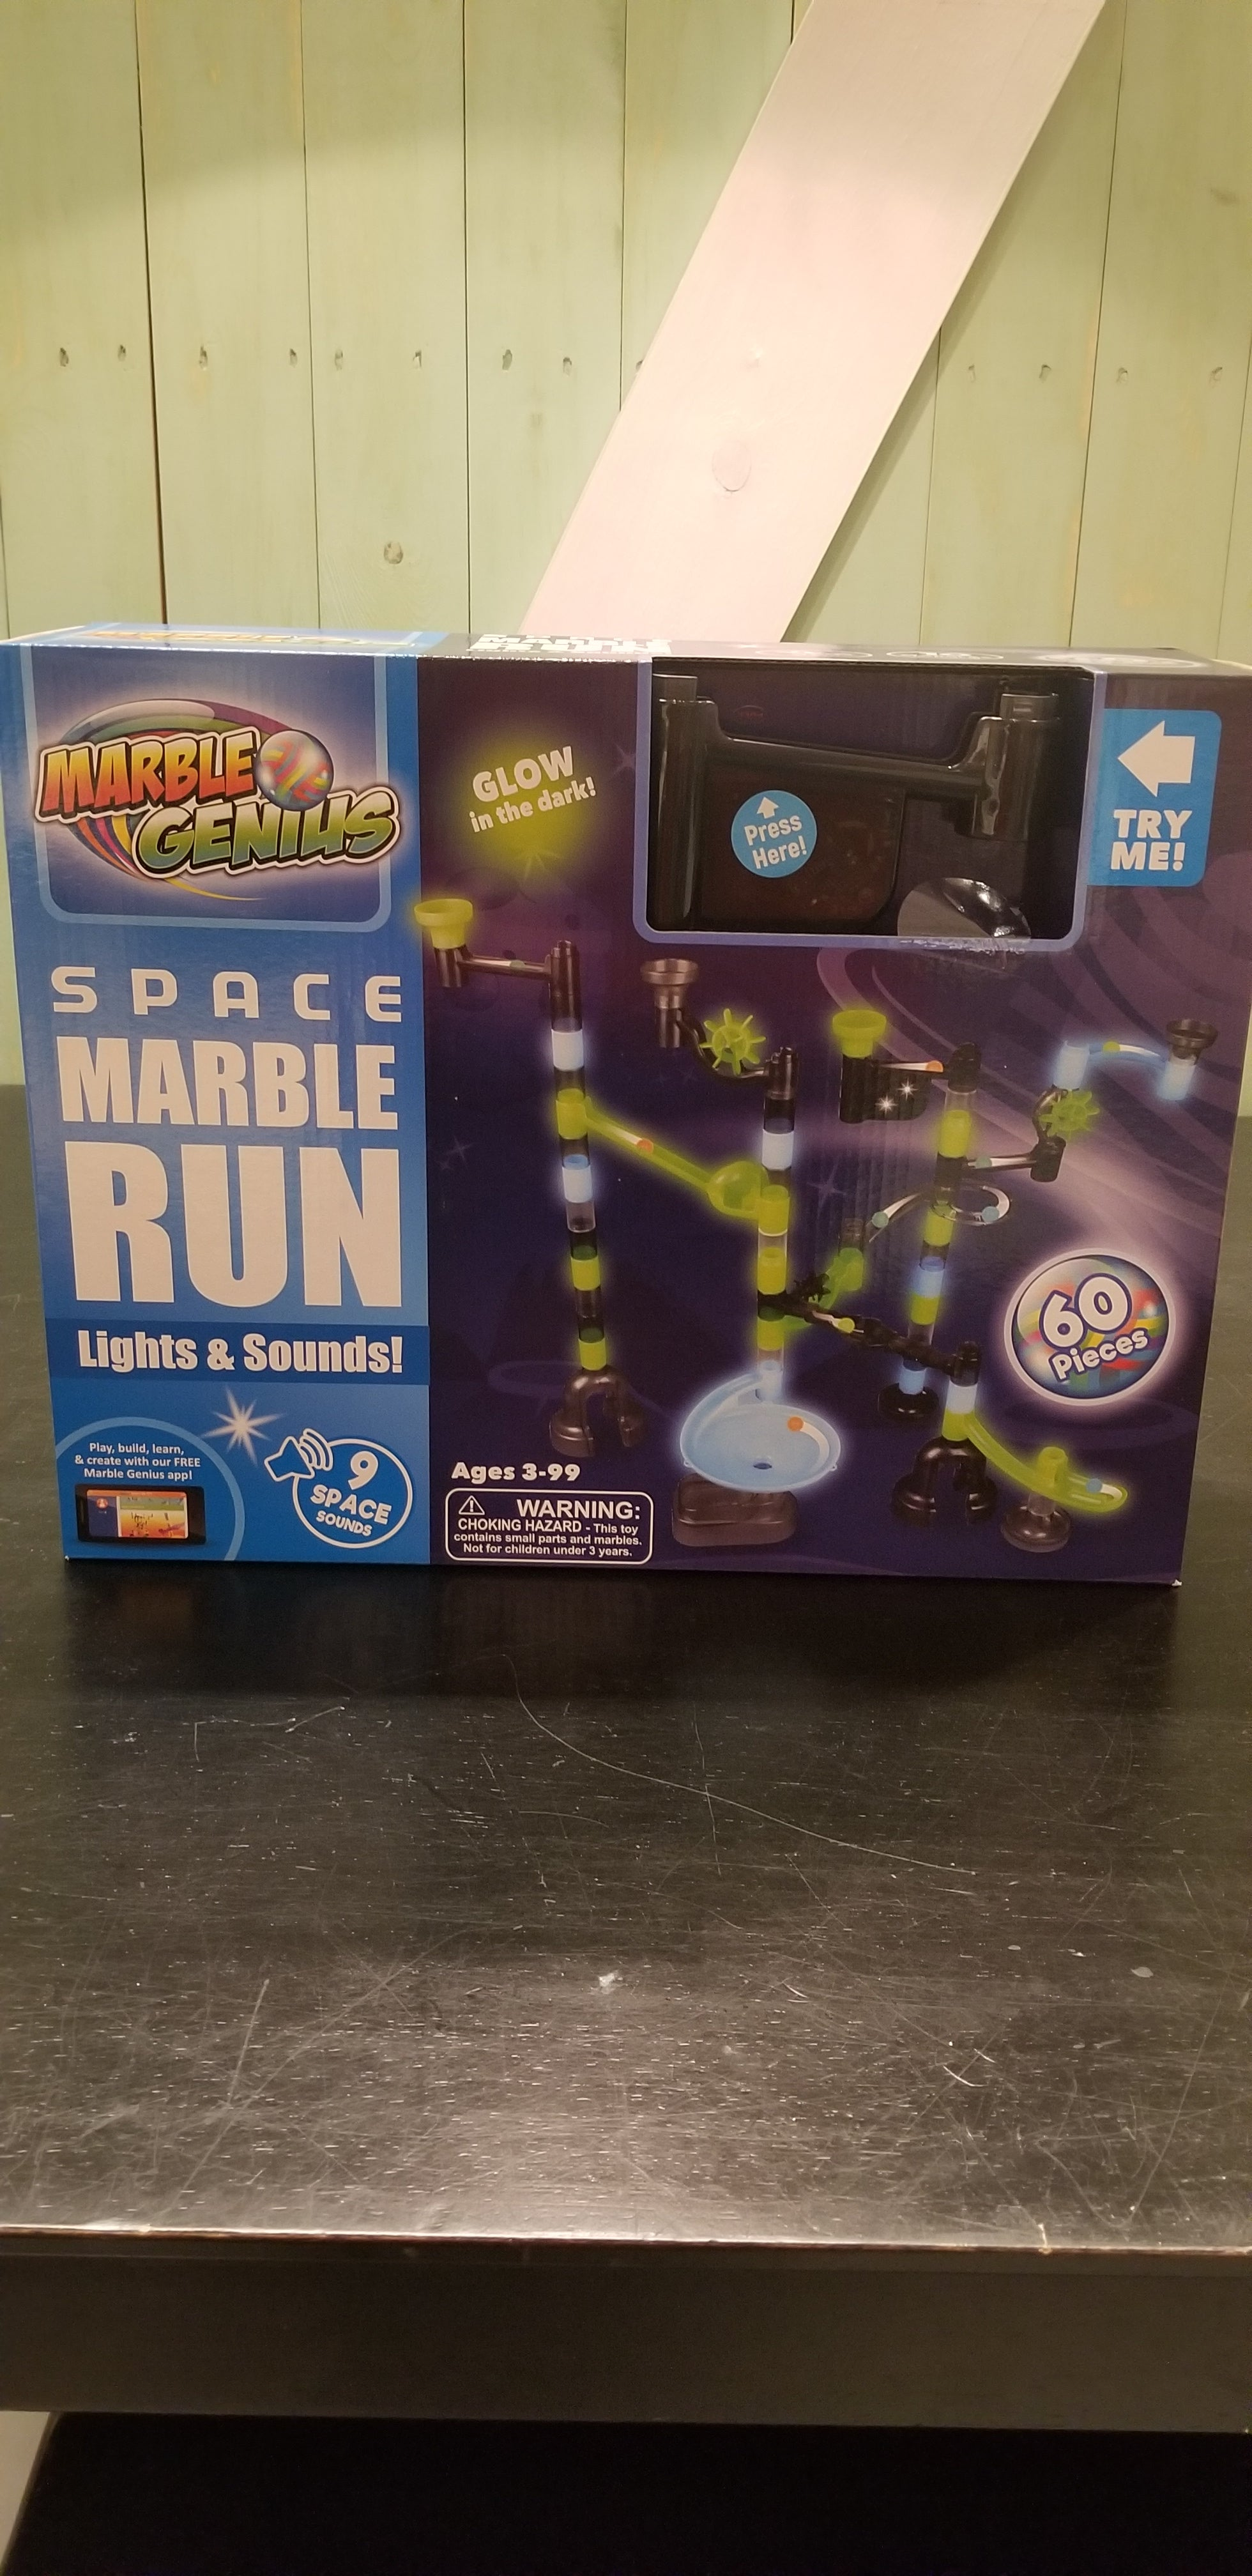 Space Marble Run Lights & Sounds (60 Pieces)